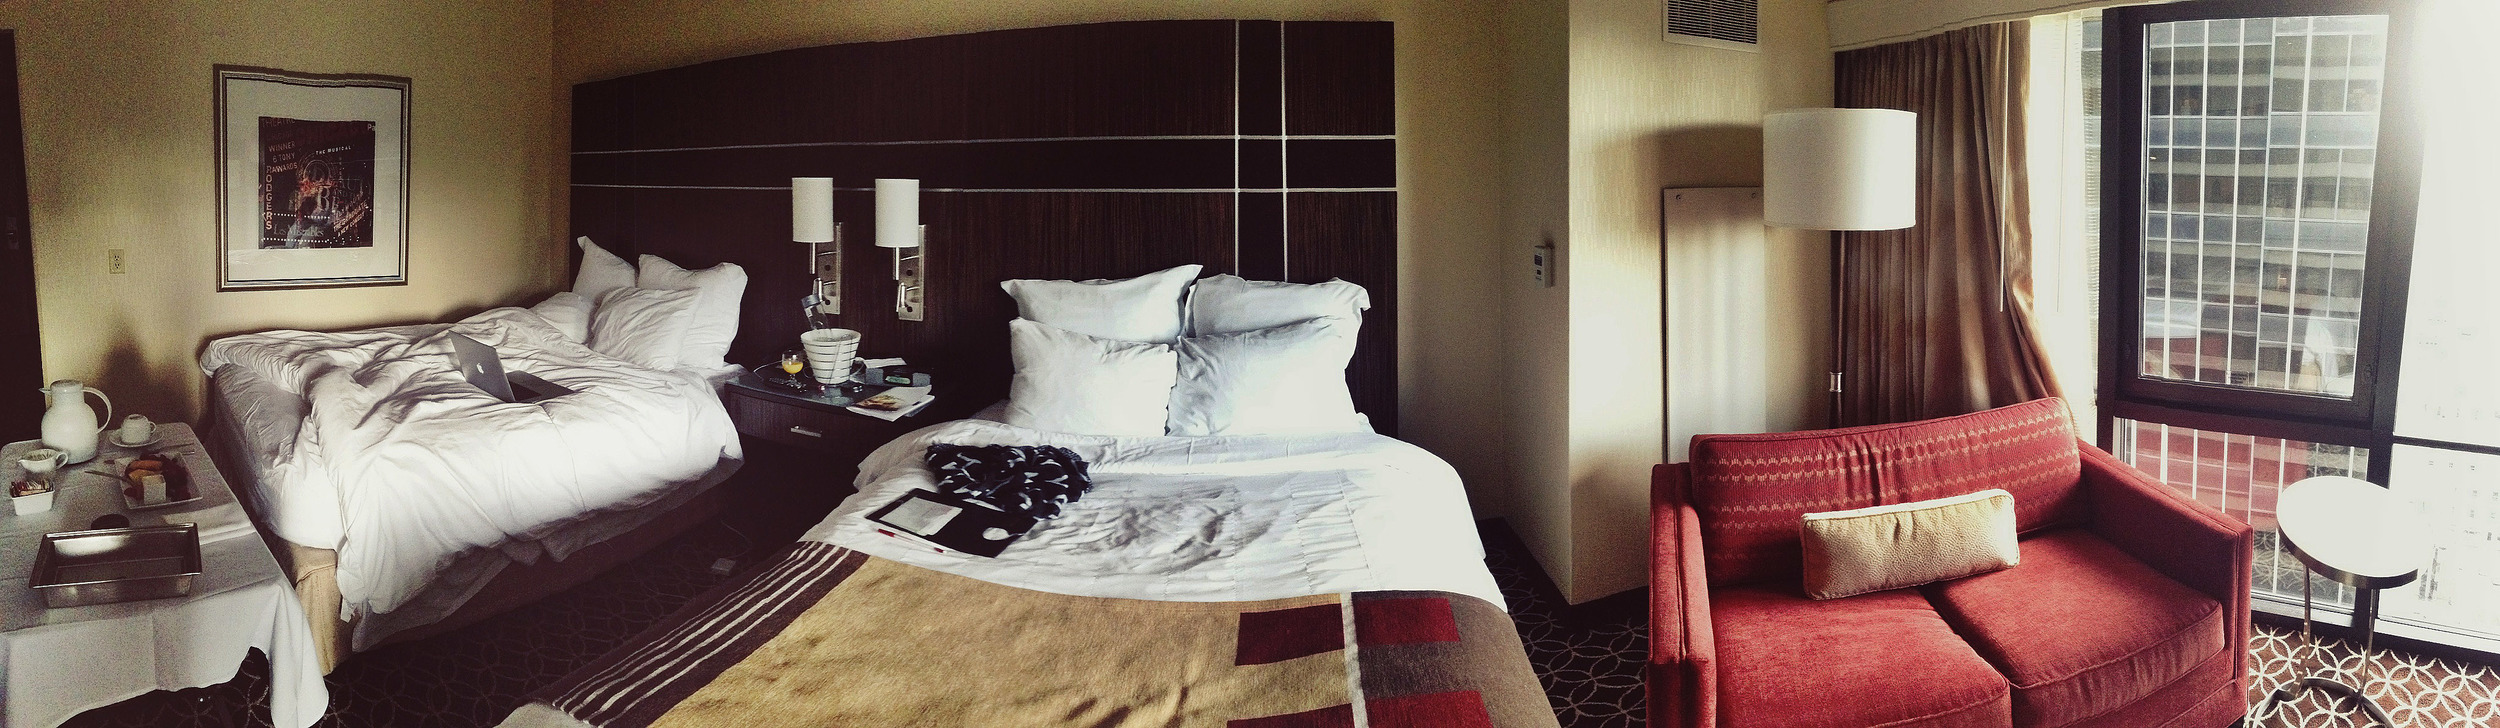 playing around with the Panorama feature on my iphone